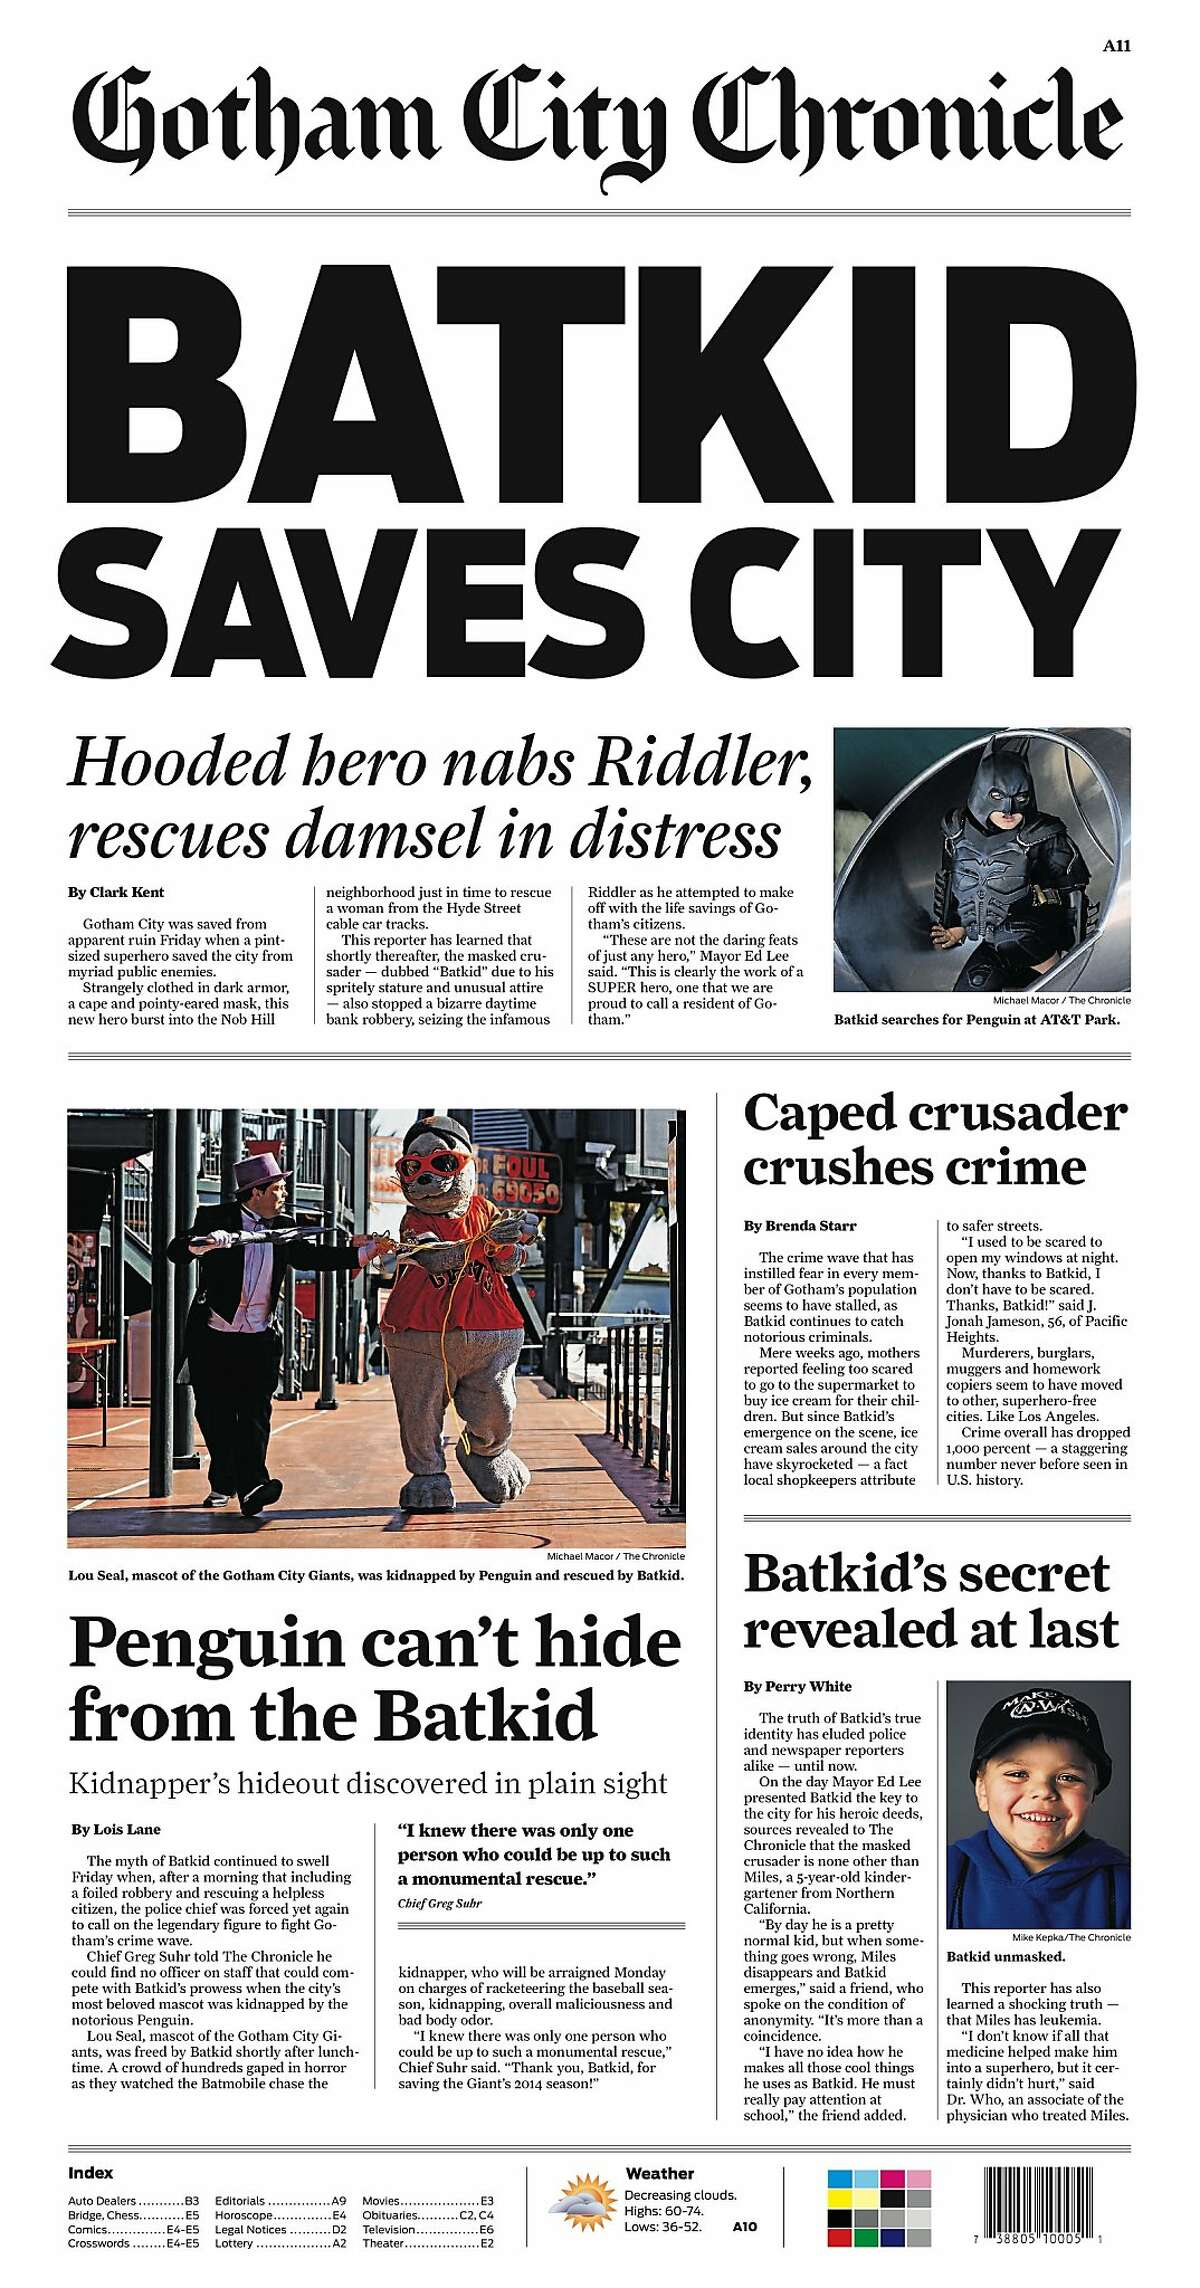 Historic Chronicle Front Page November 16, 2013 The San Francisco Chronicle and the City of San Francisco participate in the Batkid event. A facsimile paper with this front page was distributed throughout the city. Chron365, Chroncover